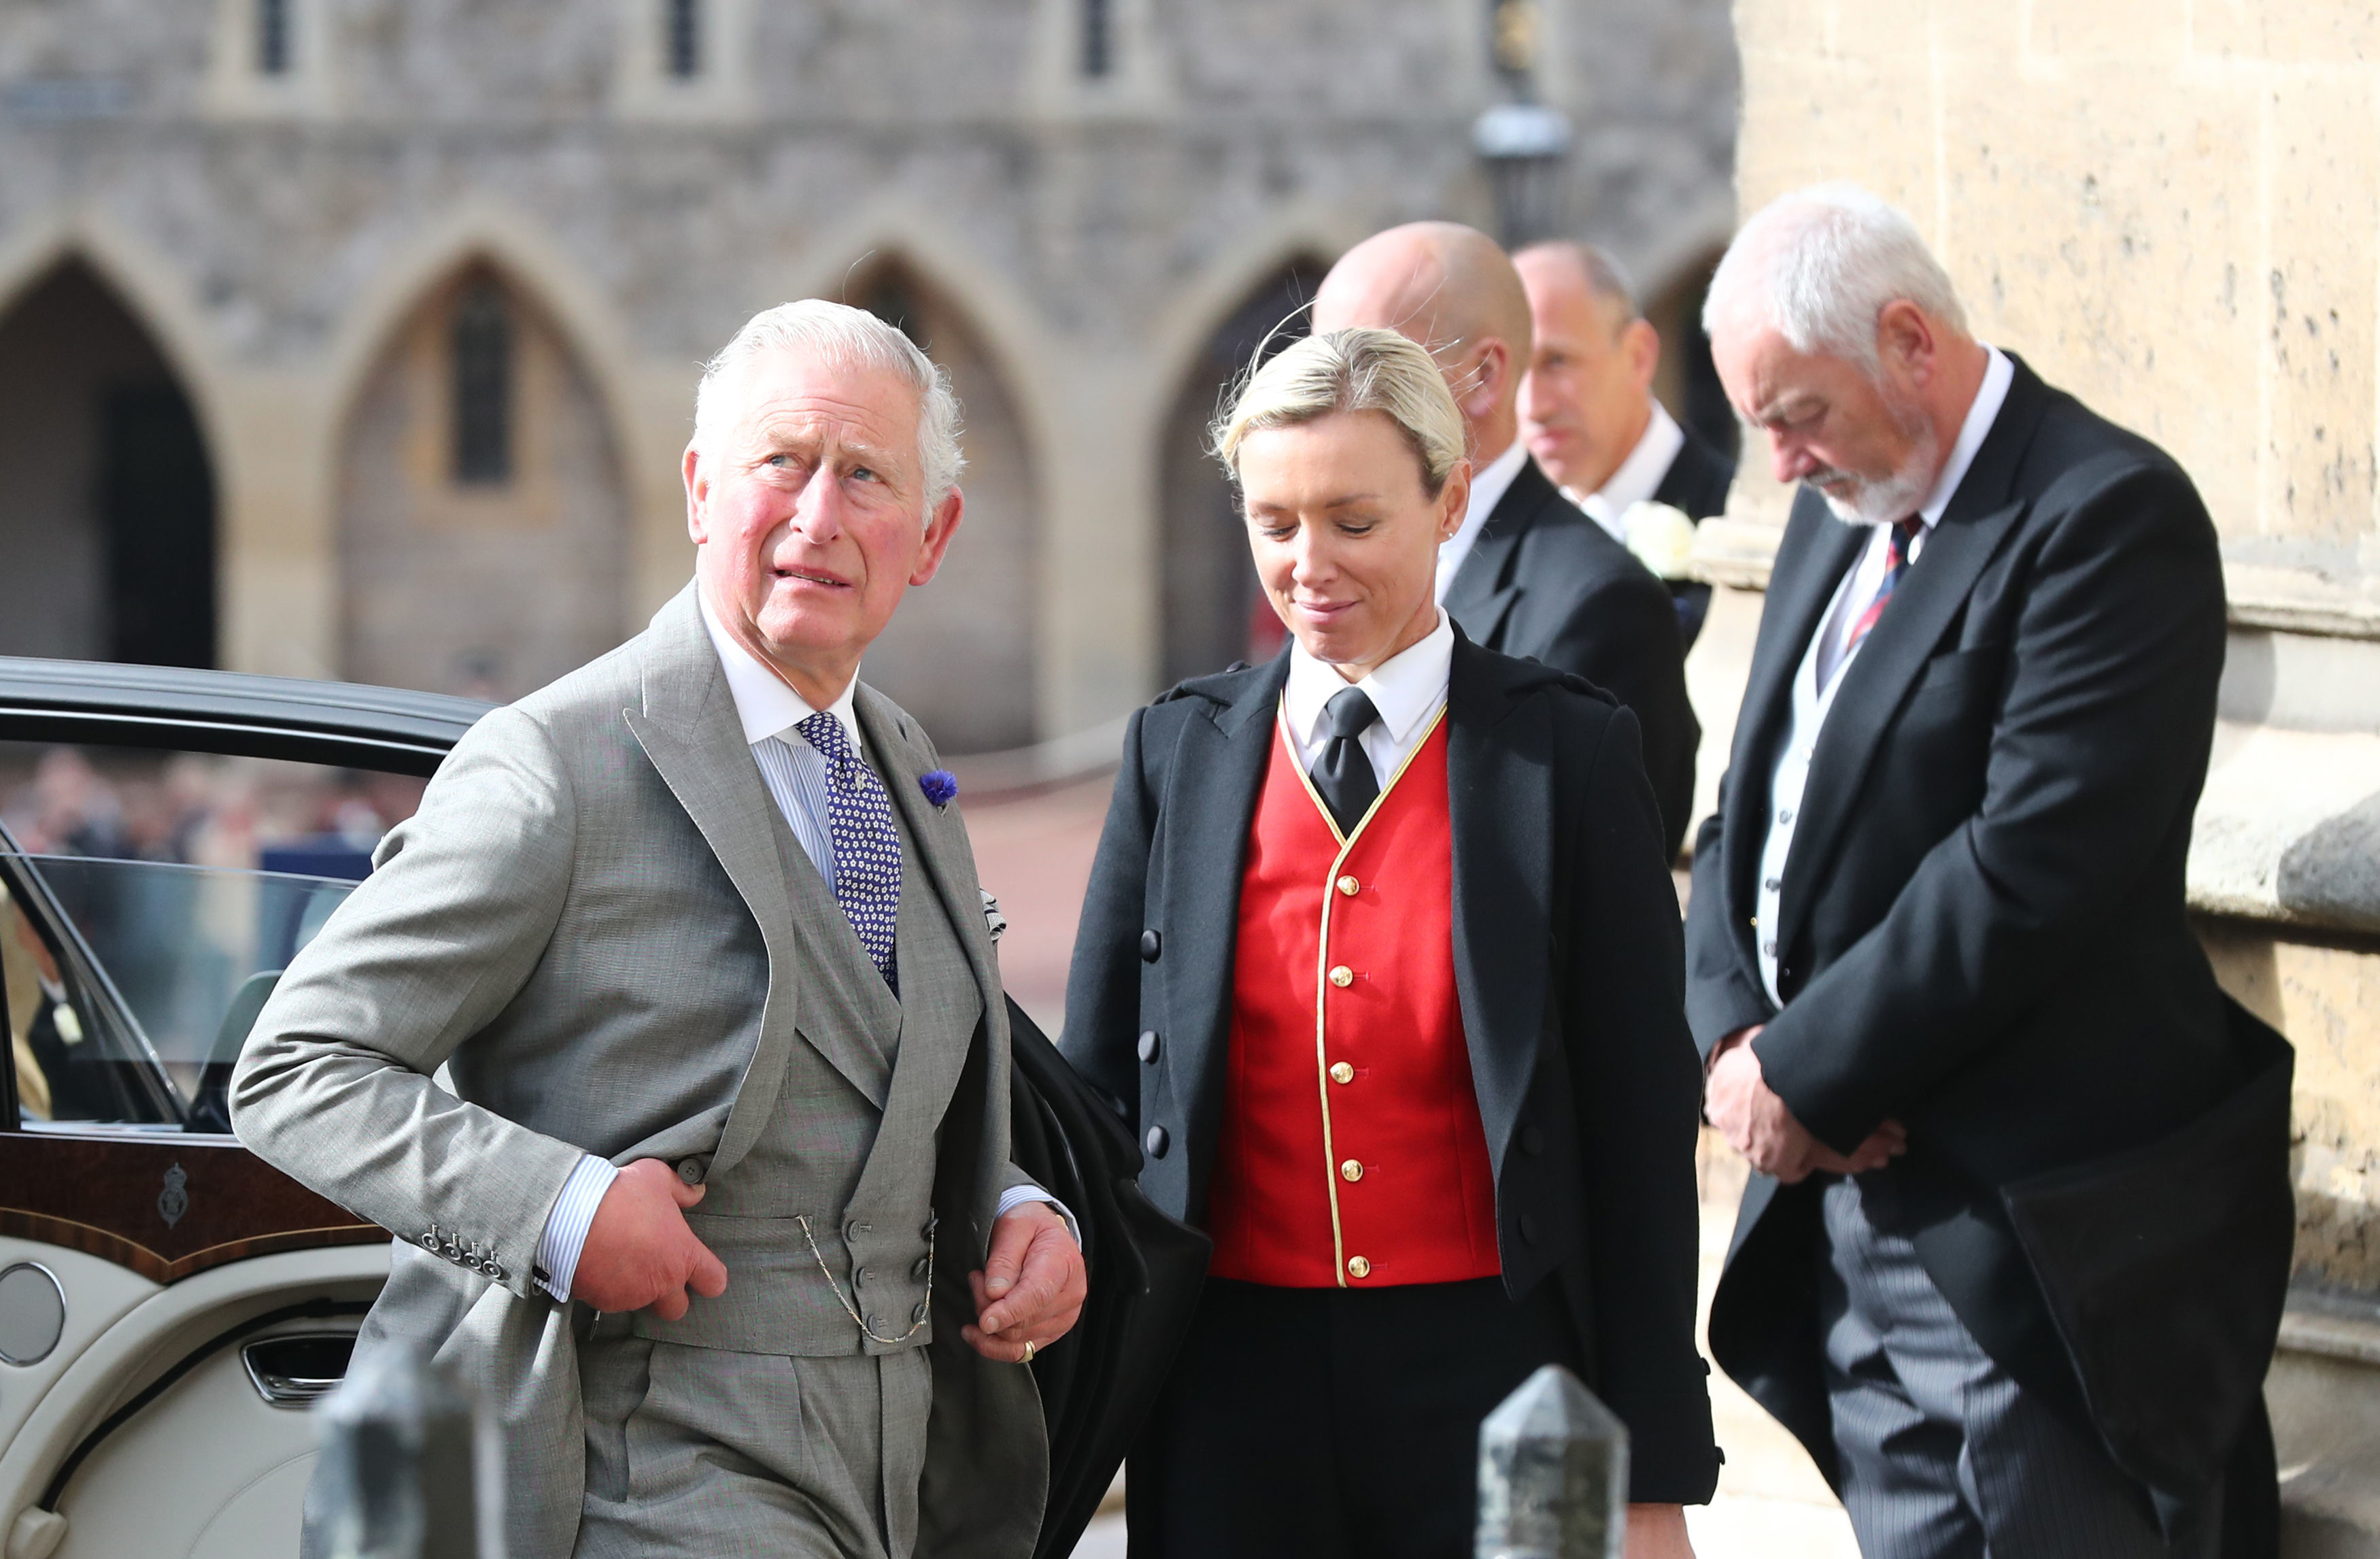 OCT 12: Prince Charles, Prince of Wales attends the wedding of Princess Eugenie of York to Jack Brooksbank at St. George's Chapel in Windsor, England.